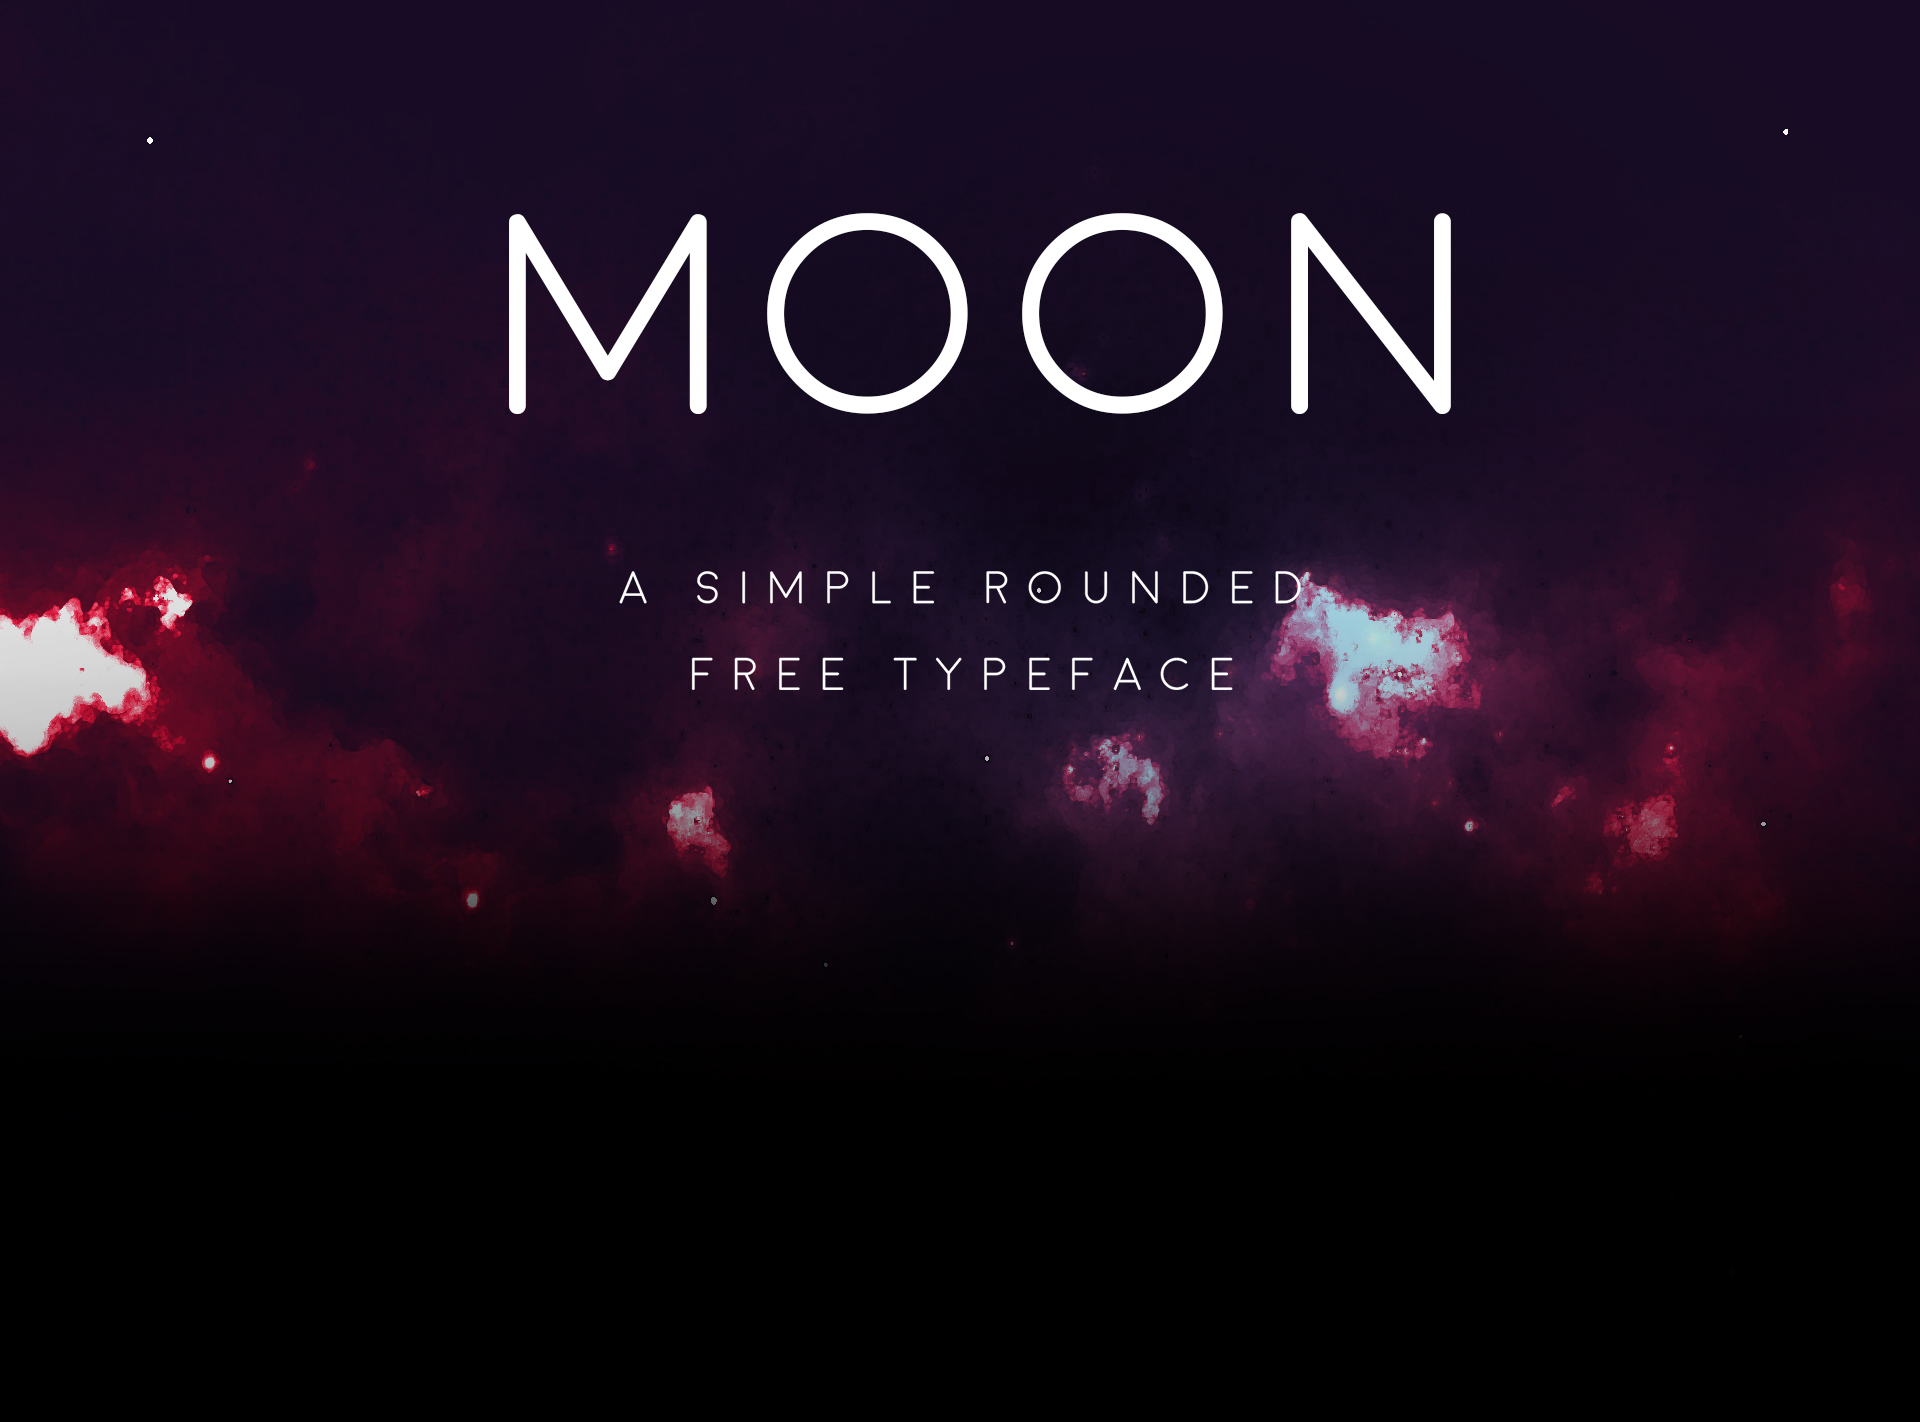 Moon Typeface Free Download - Free Fonts